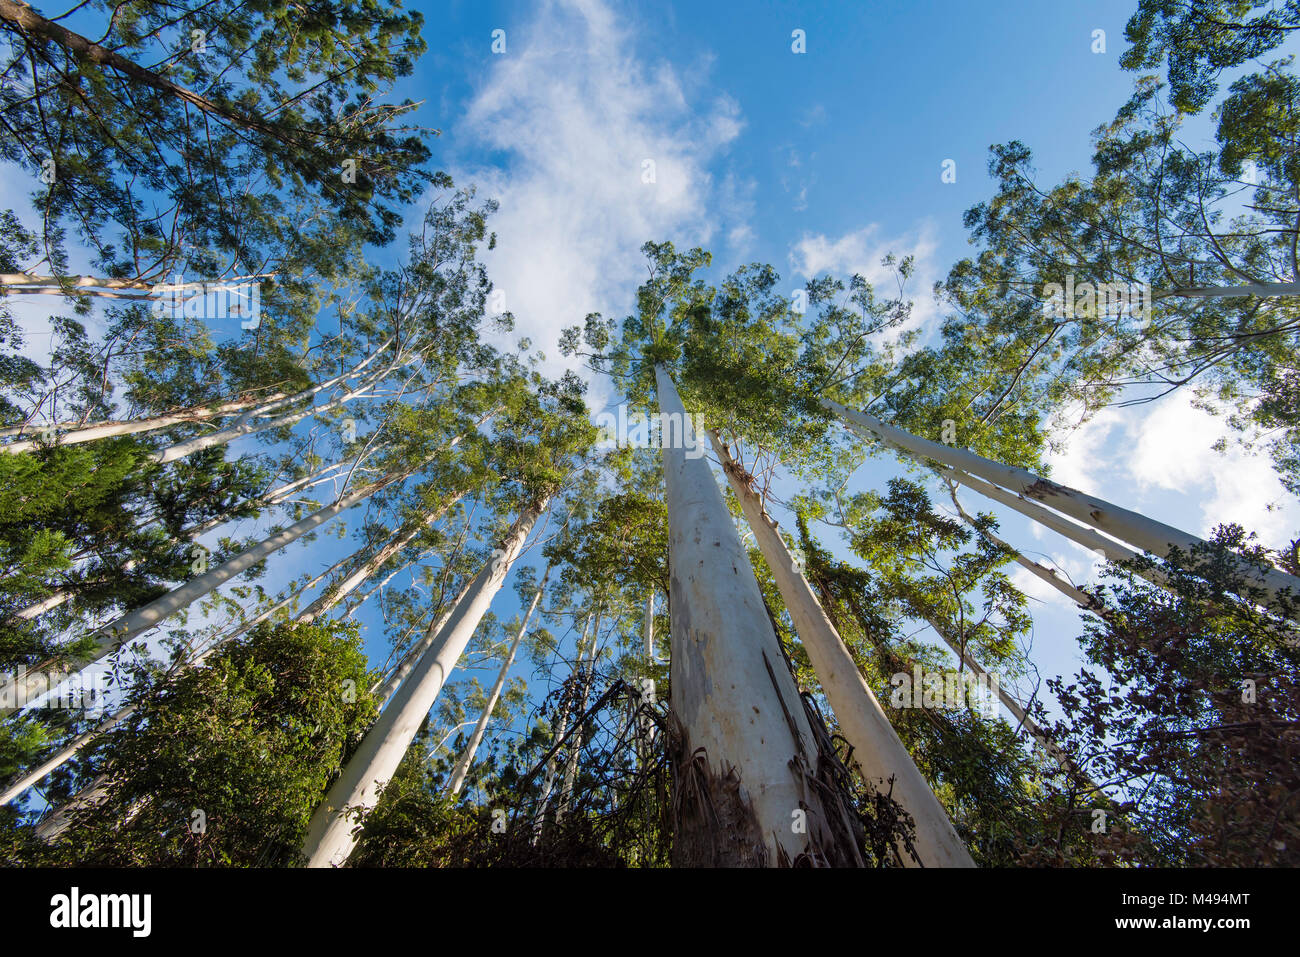 A stand of Eucalyptus grandis also known as the flooded gum or rose gum trees in Northern NSW, Australia - Stock Image